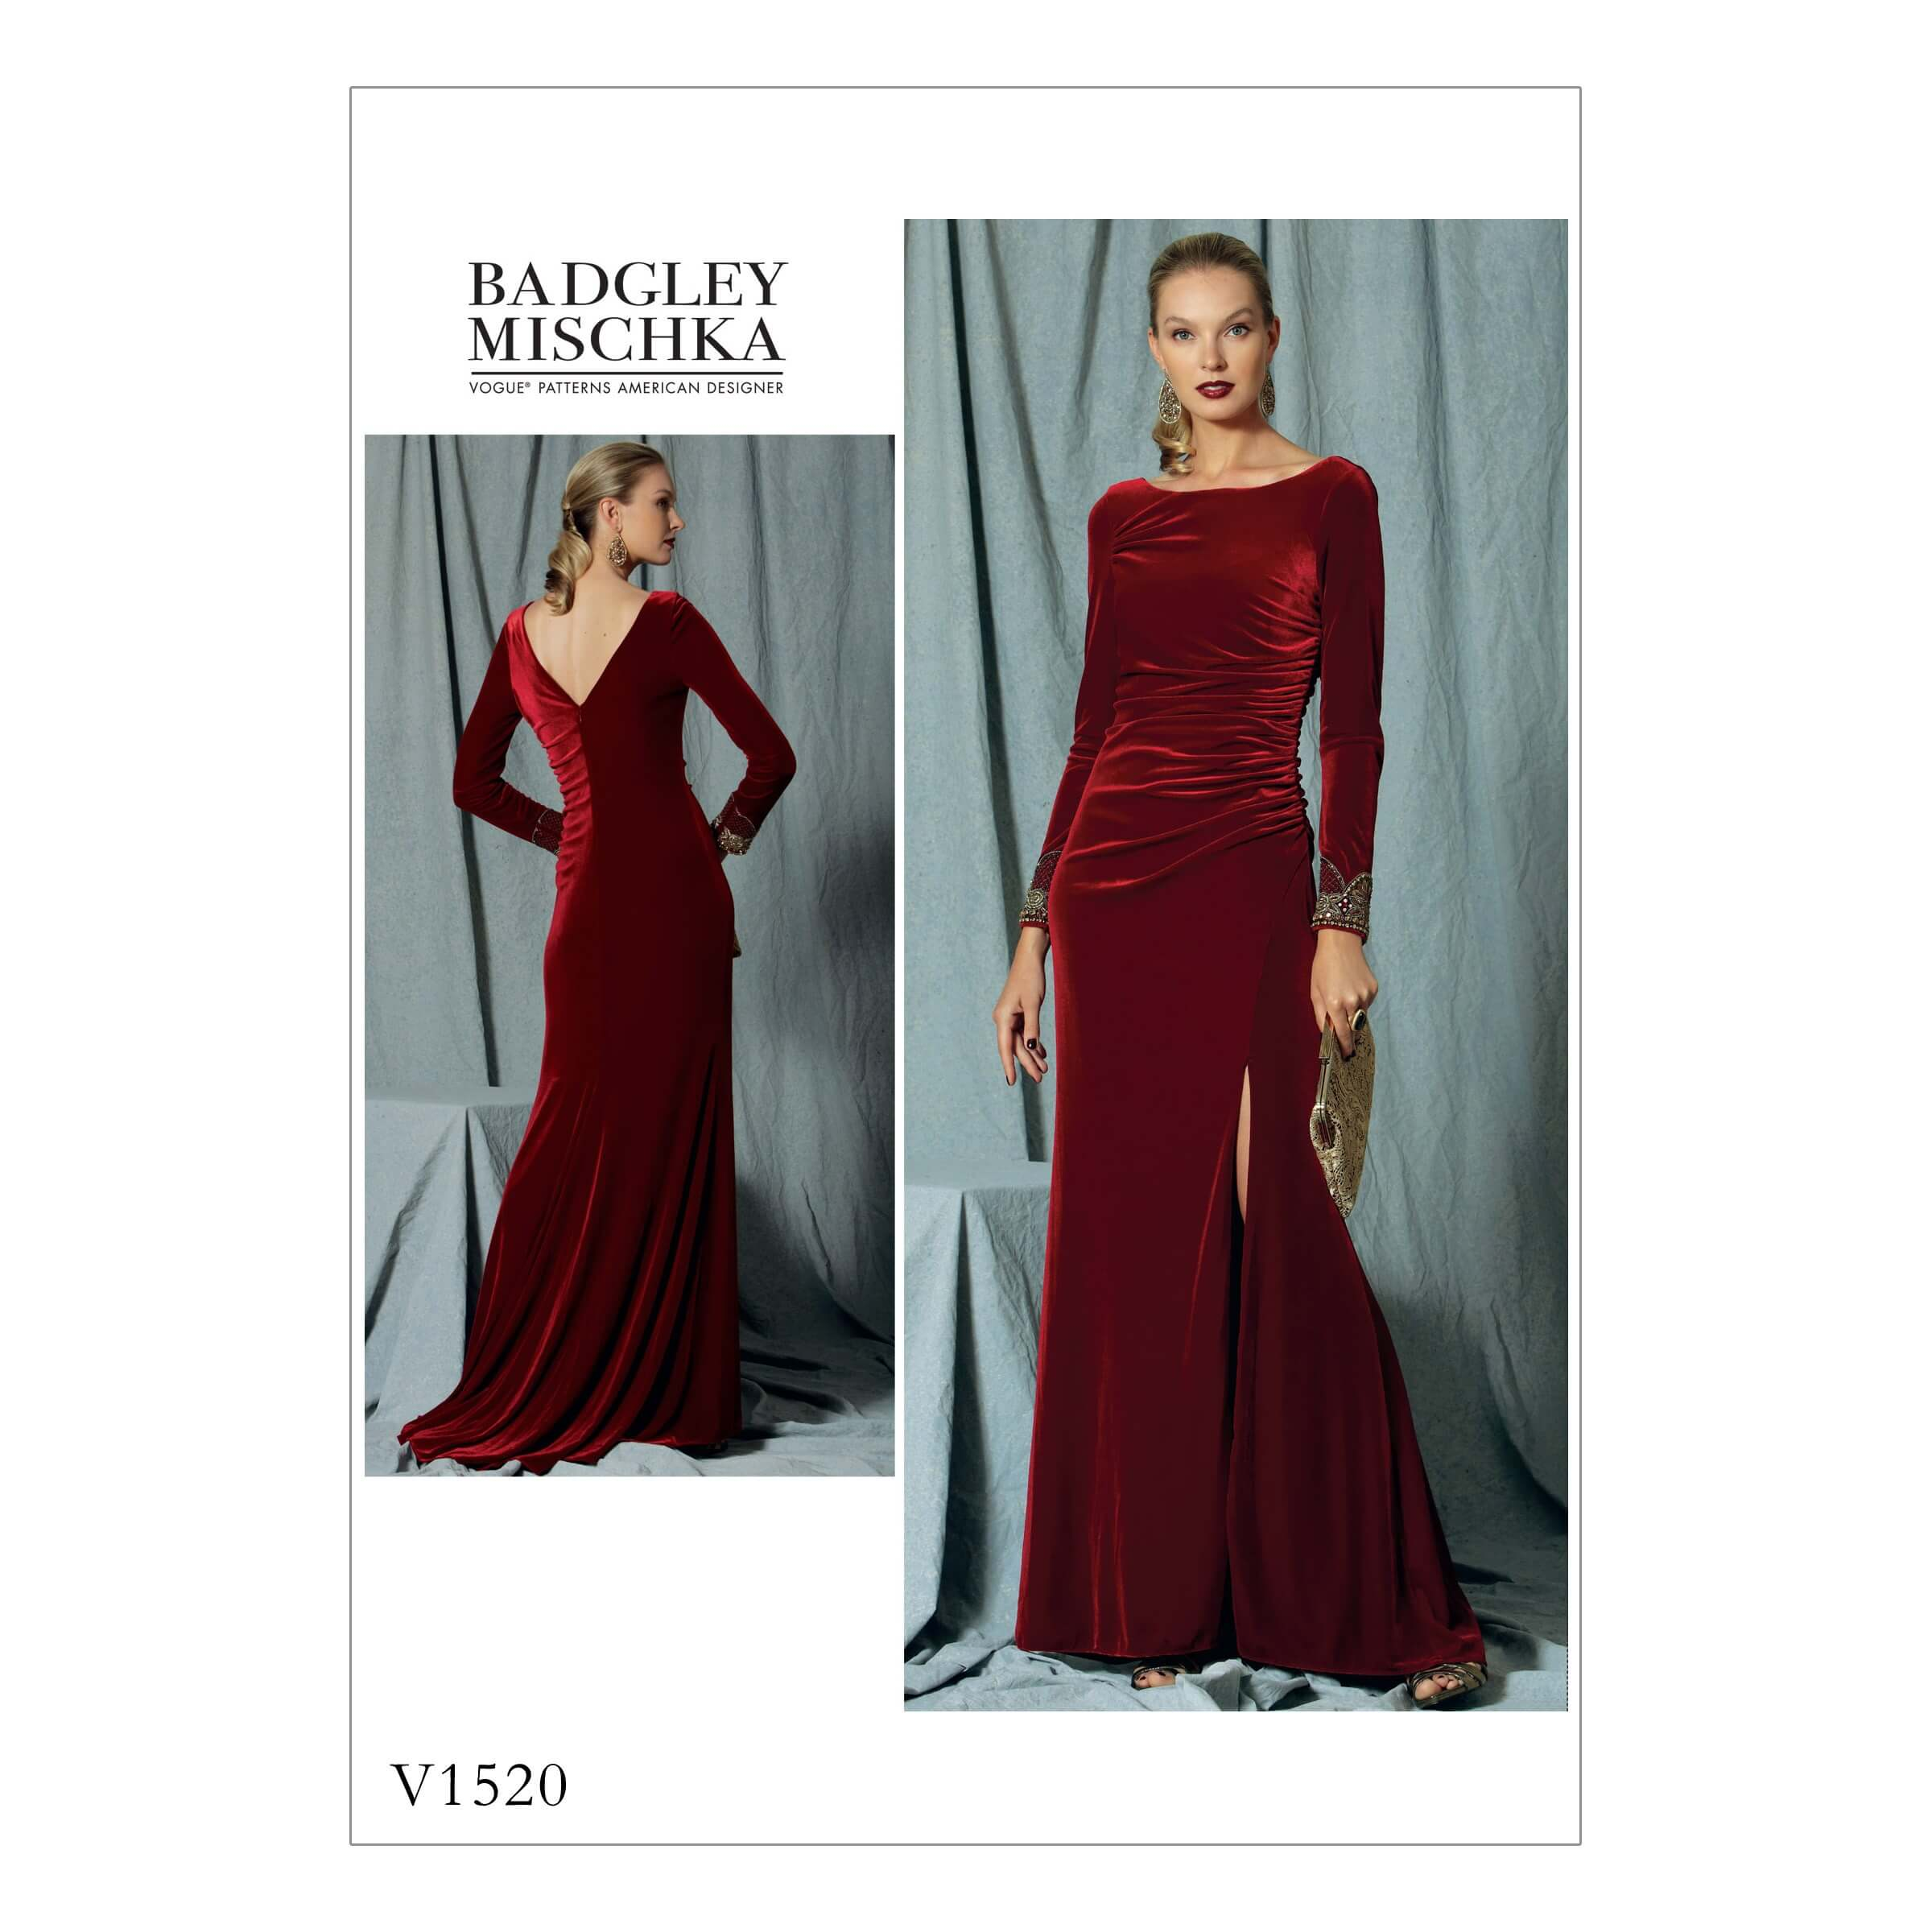 Vogue Sewing Pattern V1520 Women's Special Occasion Dress with Side Slit Skirt